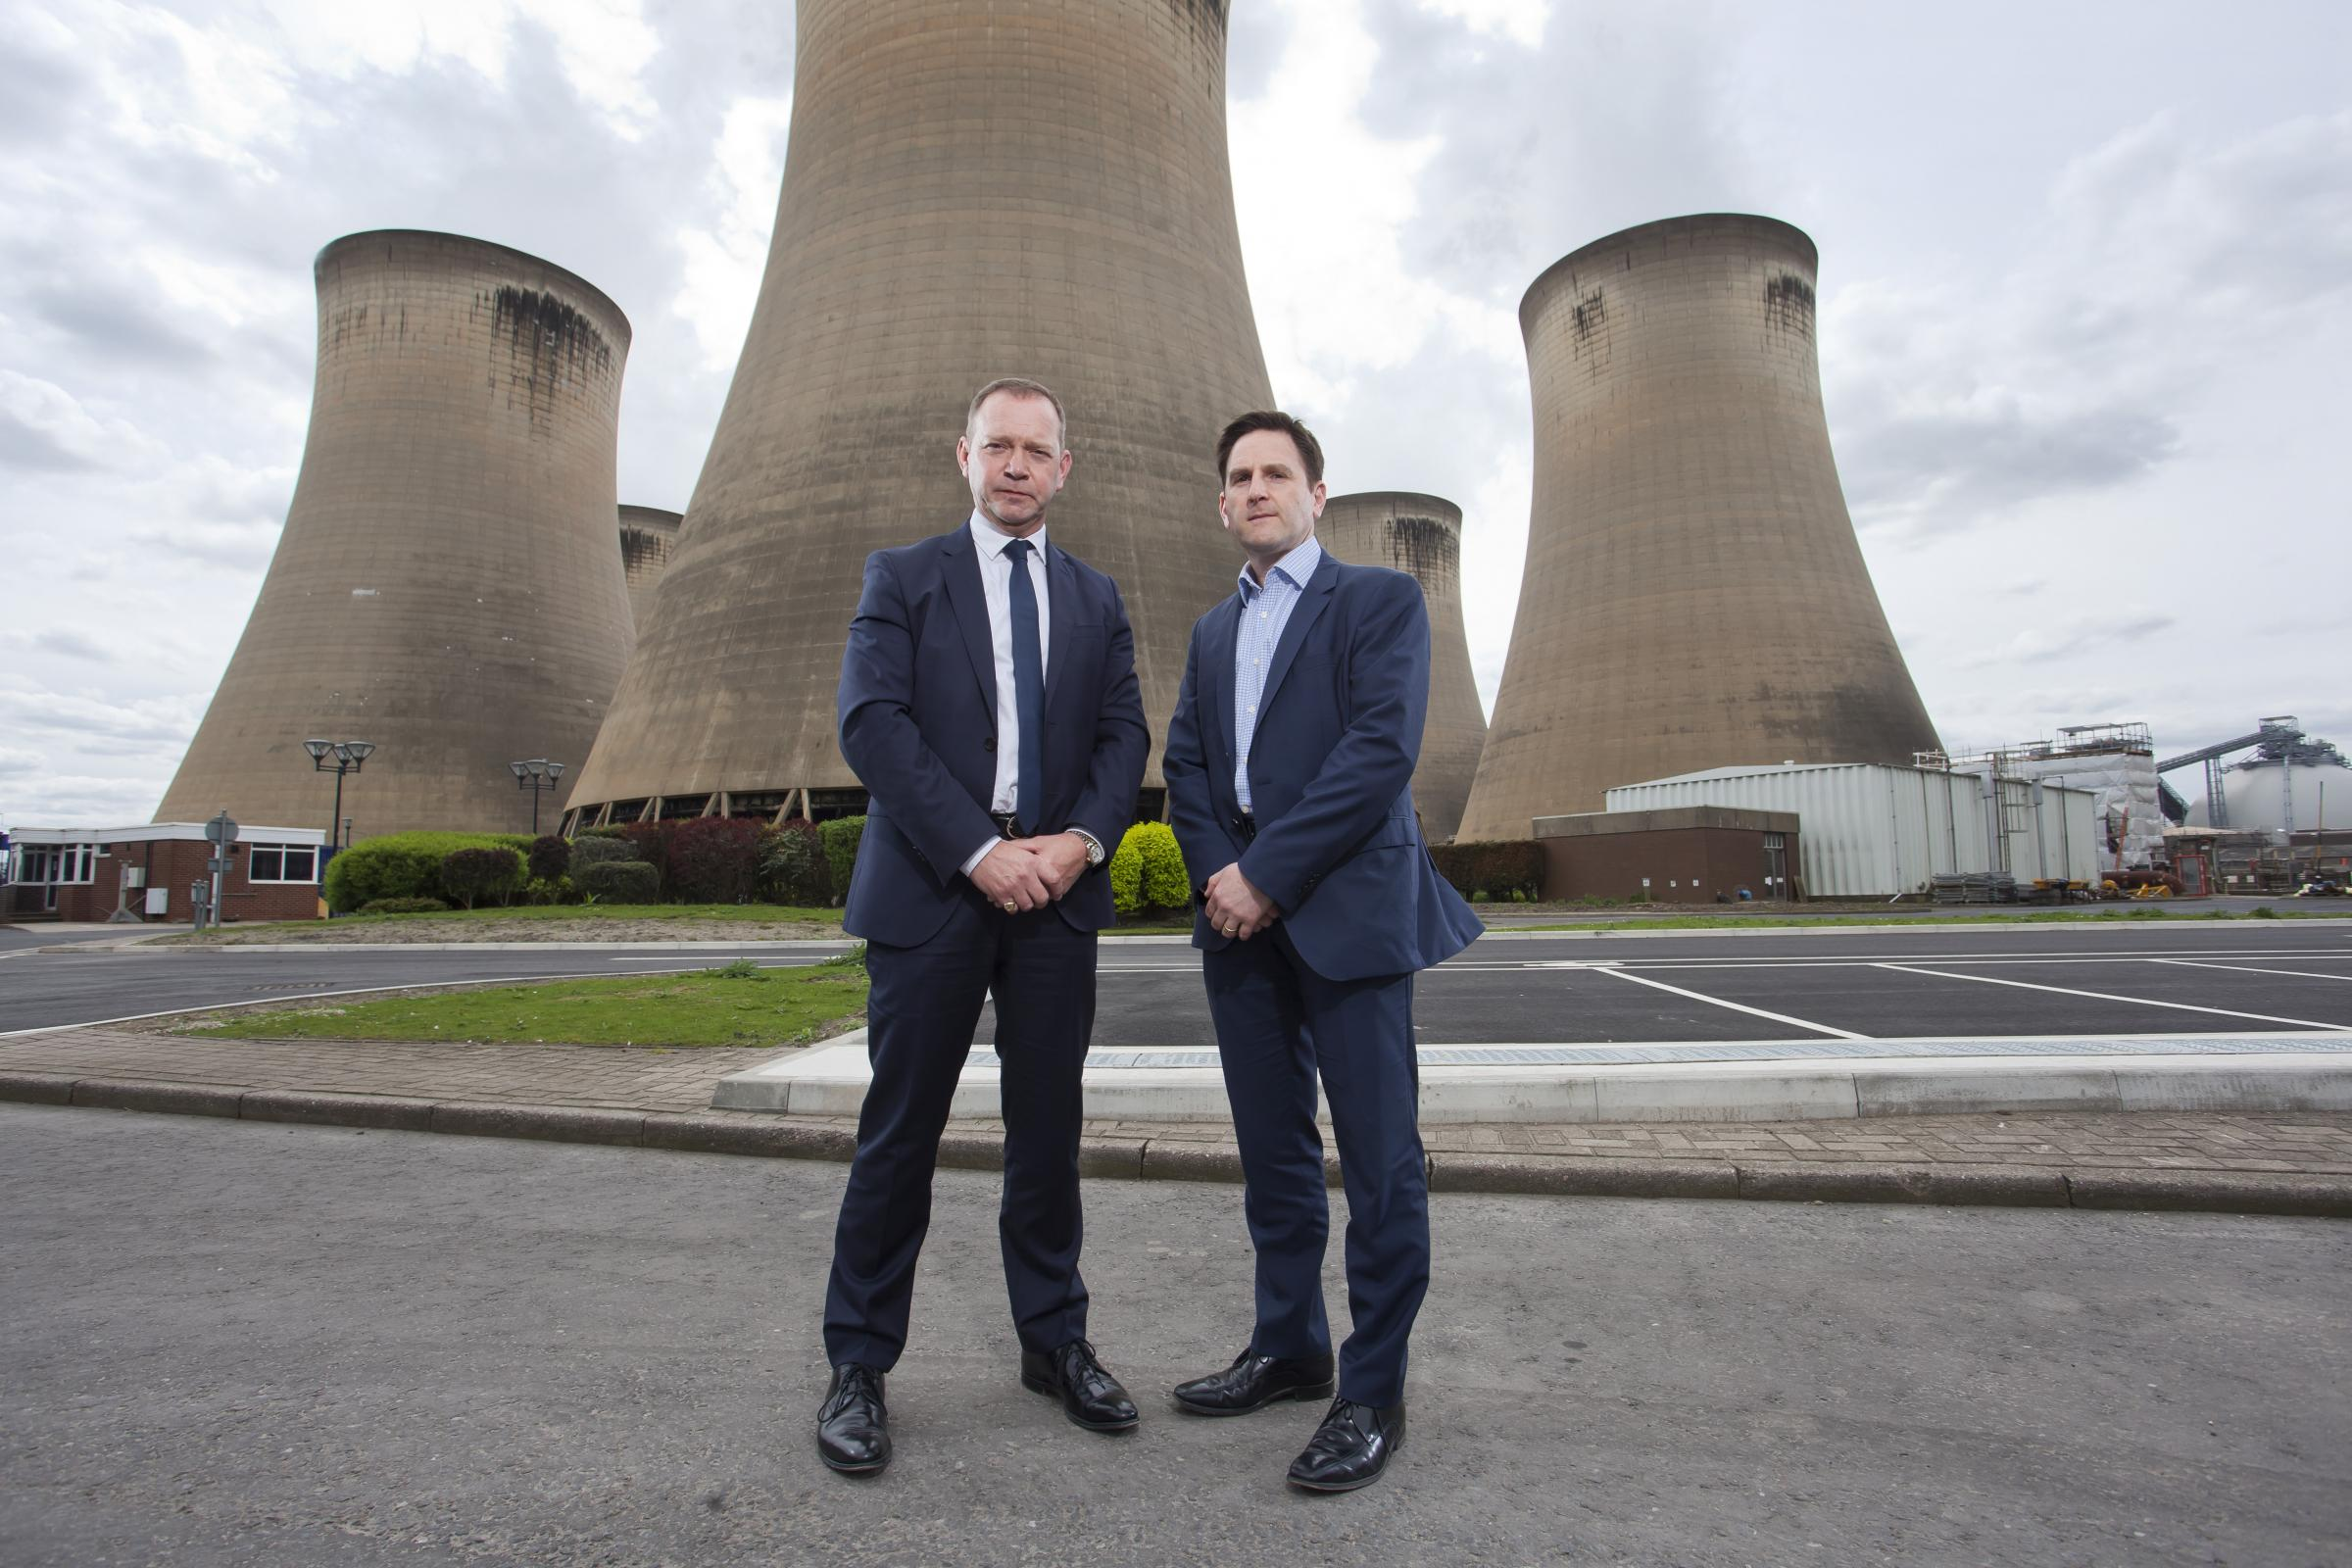 John Procter MEP and Drax Power CEO Andy Koss